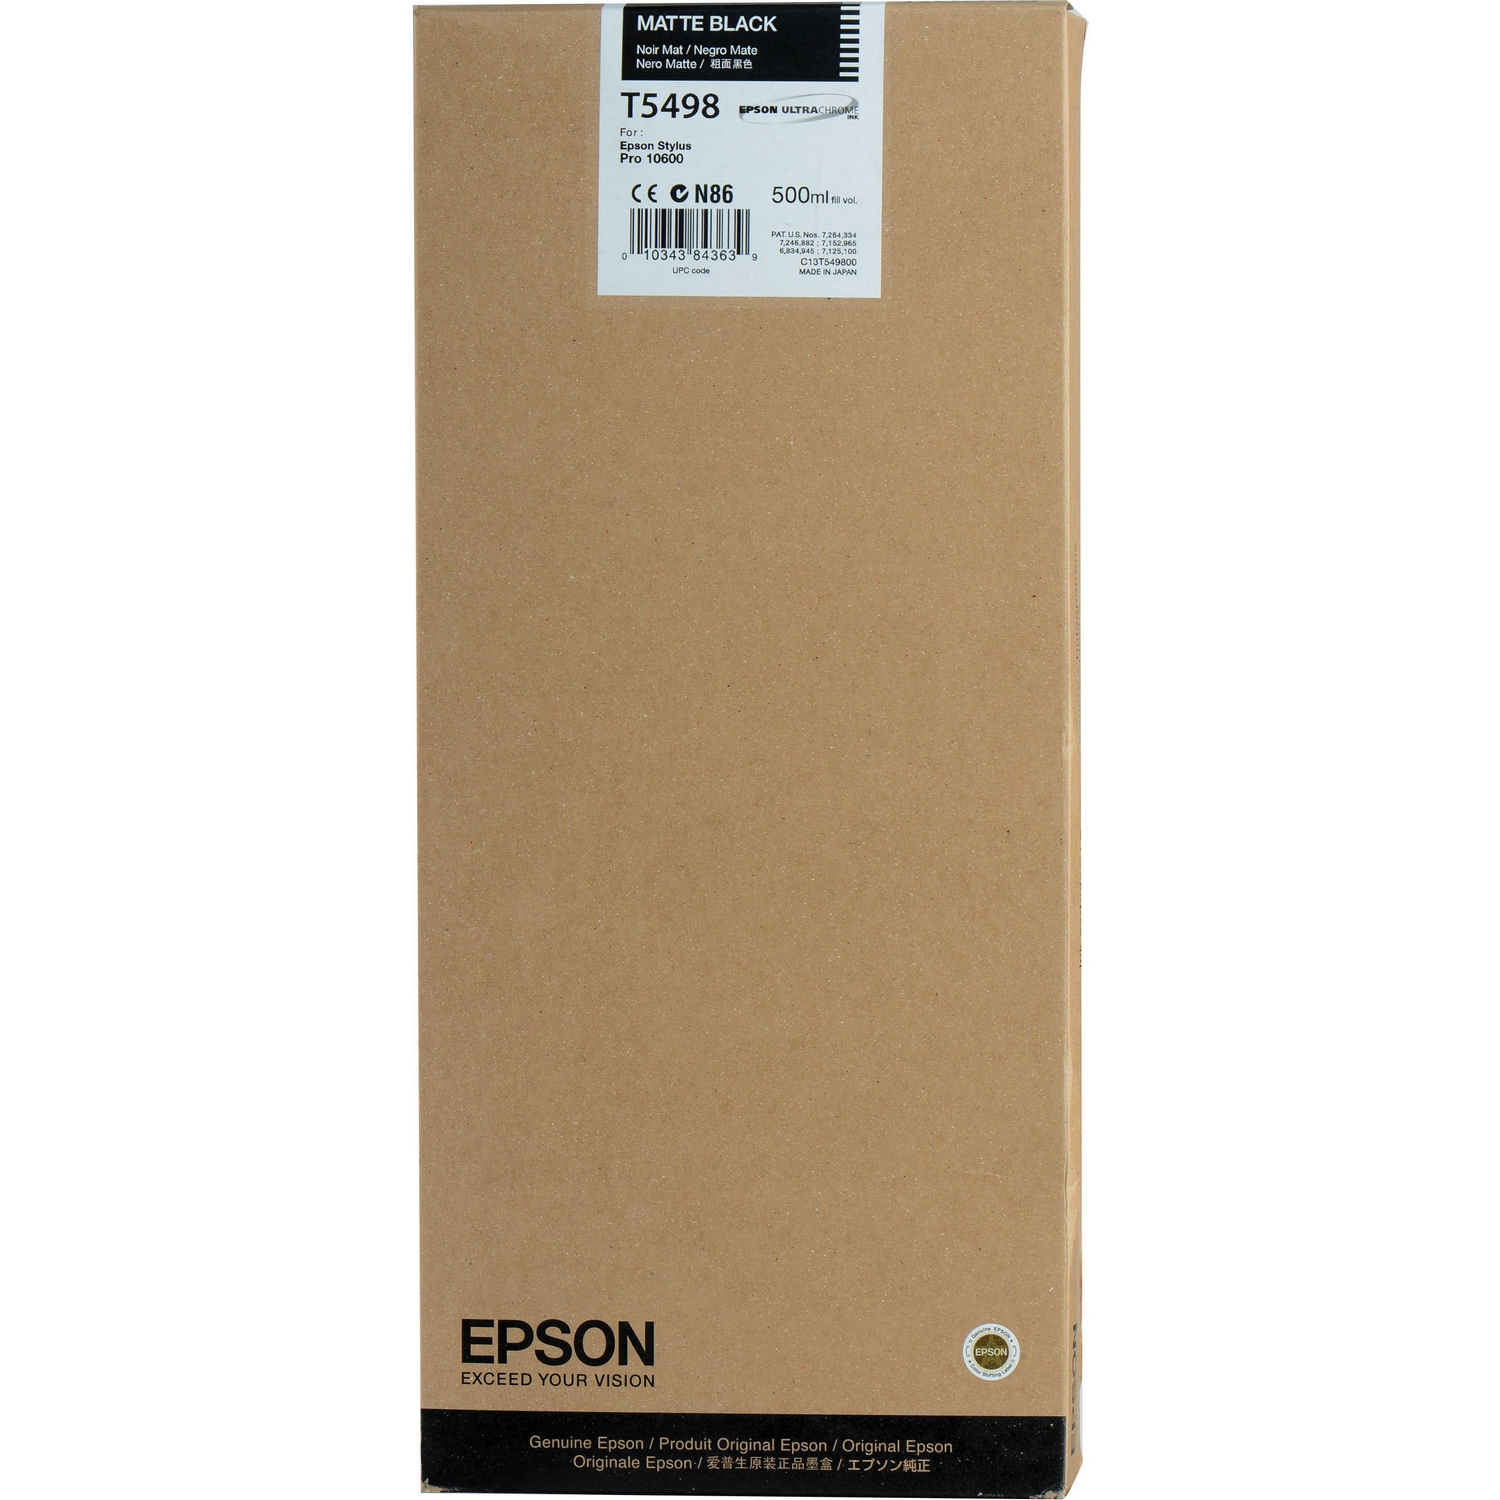 Original Epson T5498 Matte Black Ink Cartridge (C13T549800)